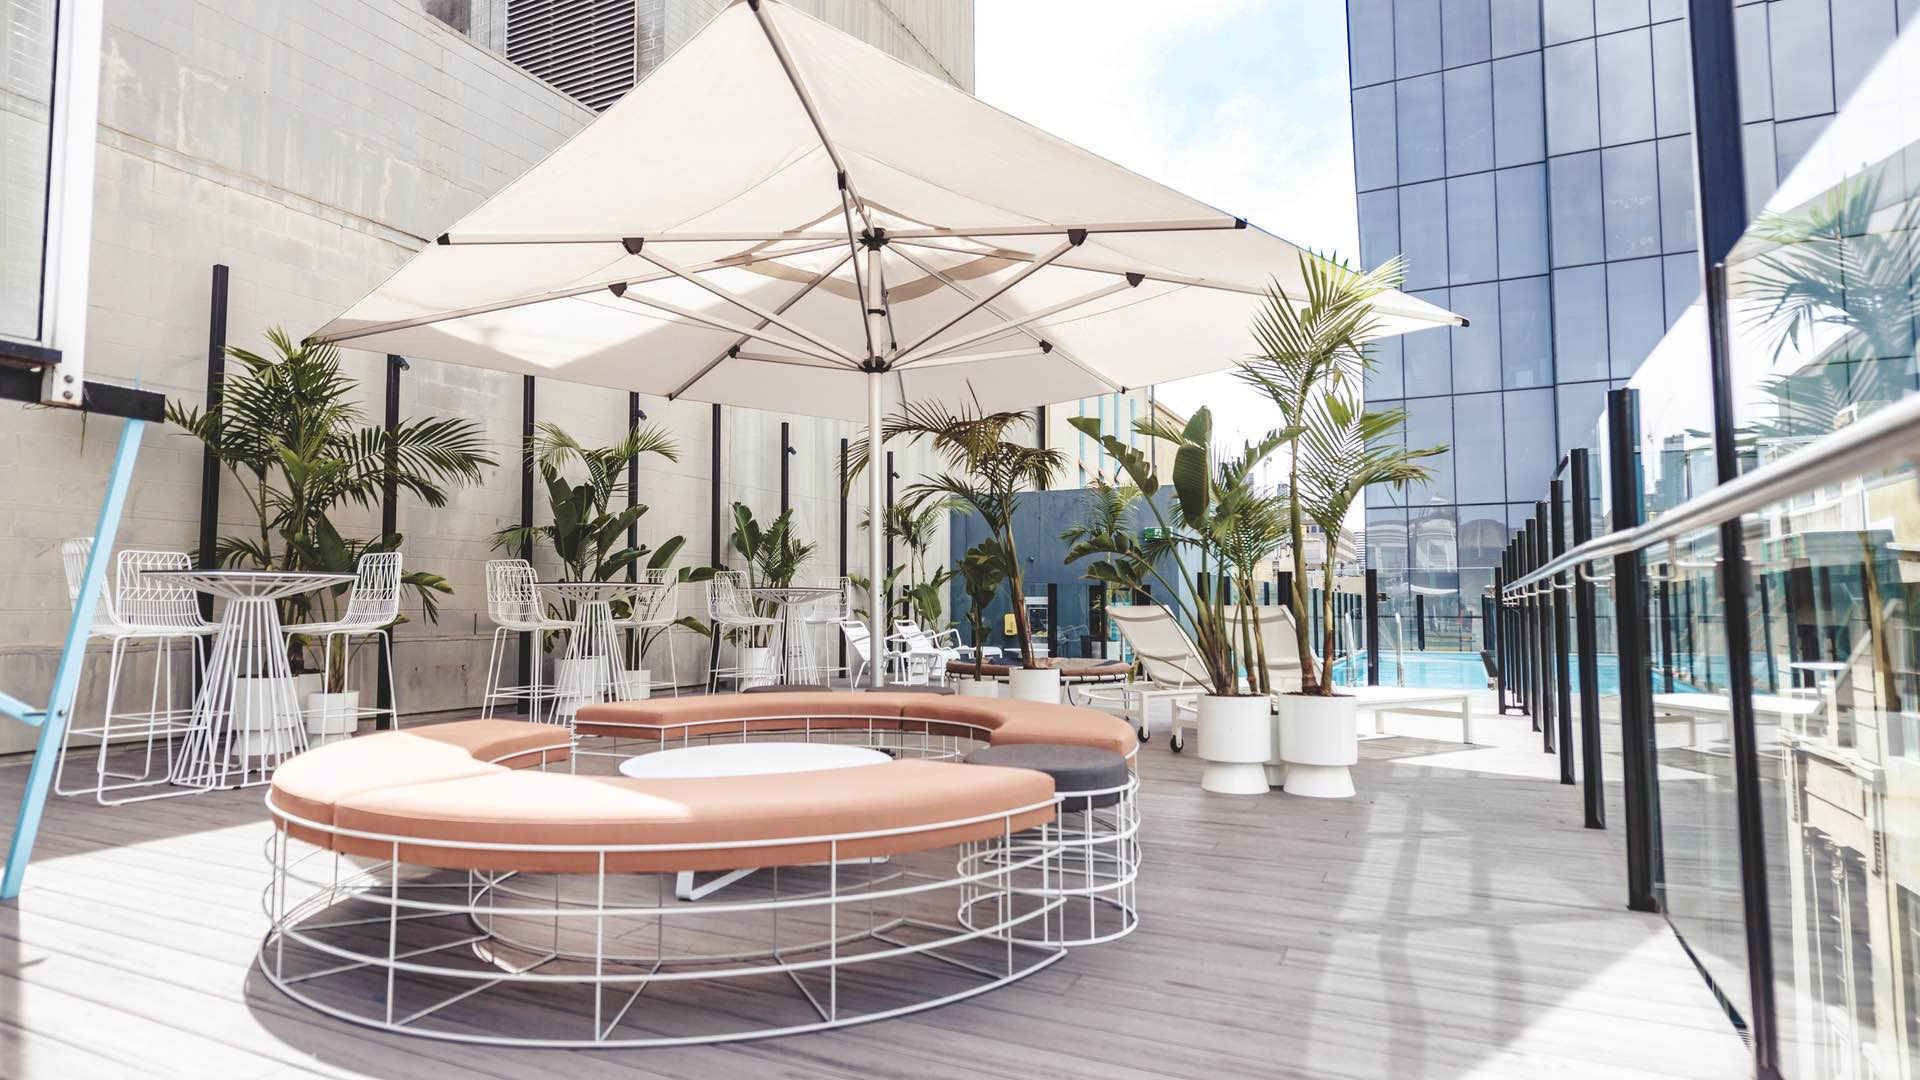 Adelphi Hotel 39 S Revamped Pool Deck Is The Ultimate Way To Escape The Scorching Cbd Streets